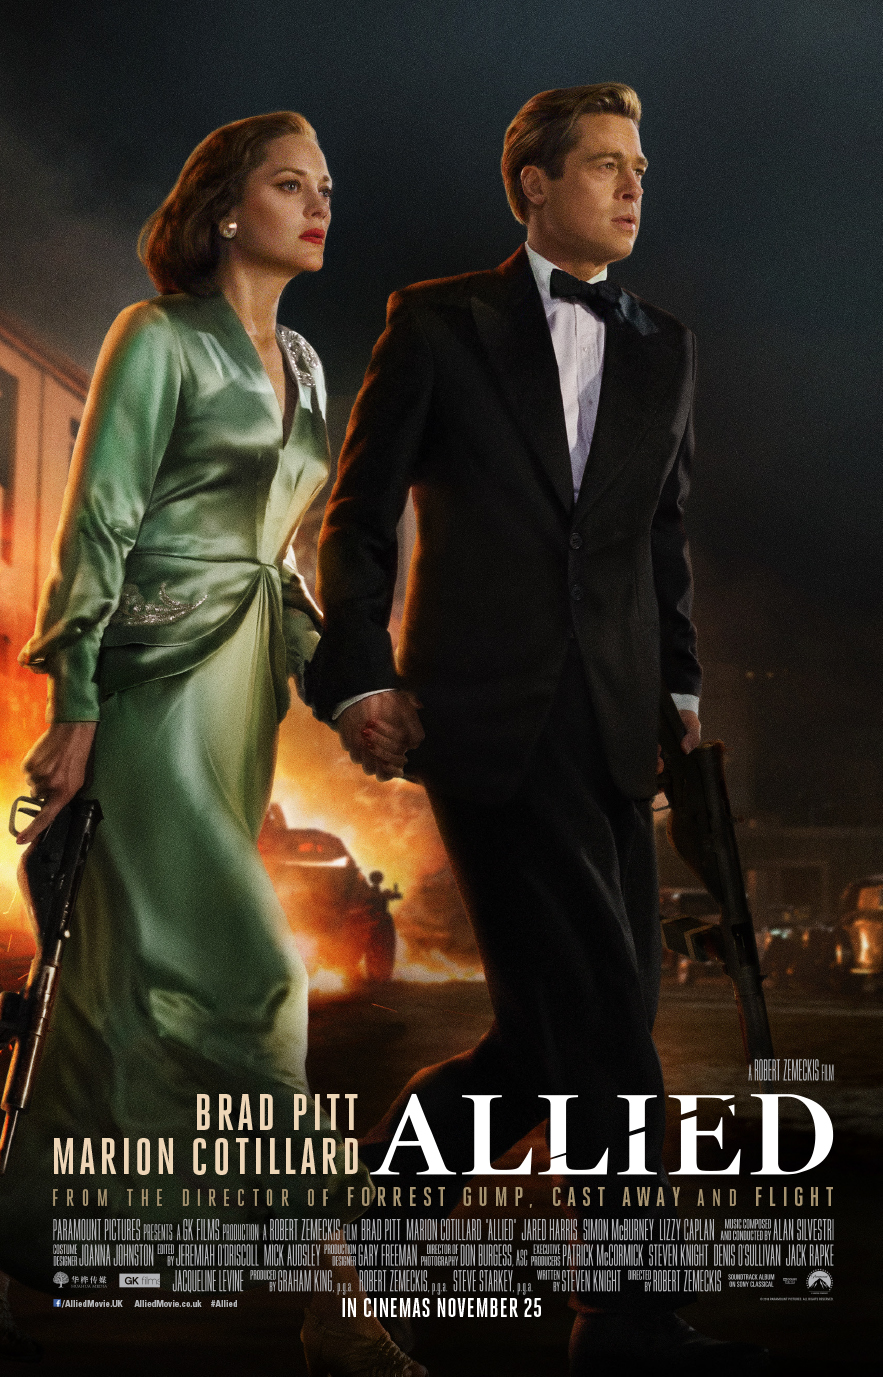 brad pitt amp marion cotillard are dressed to kill in this